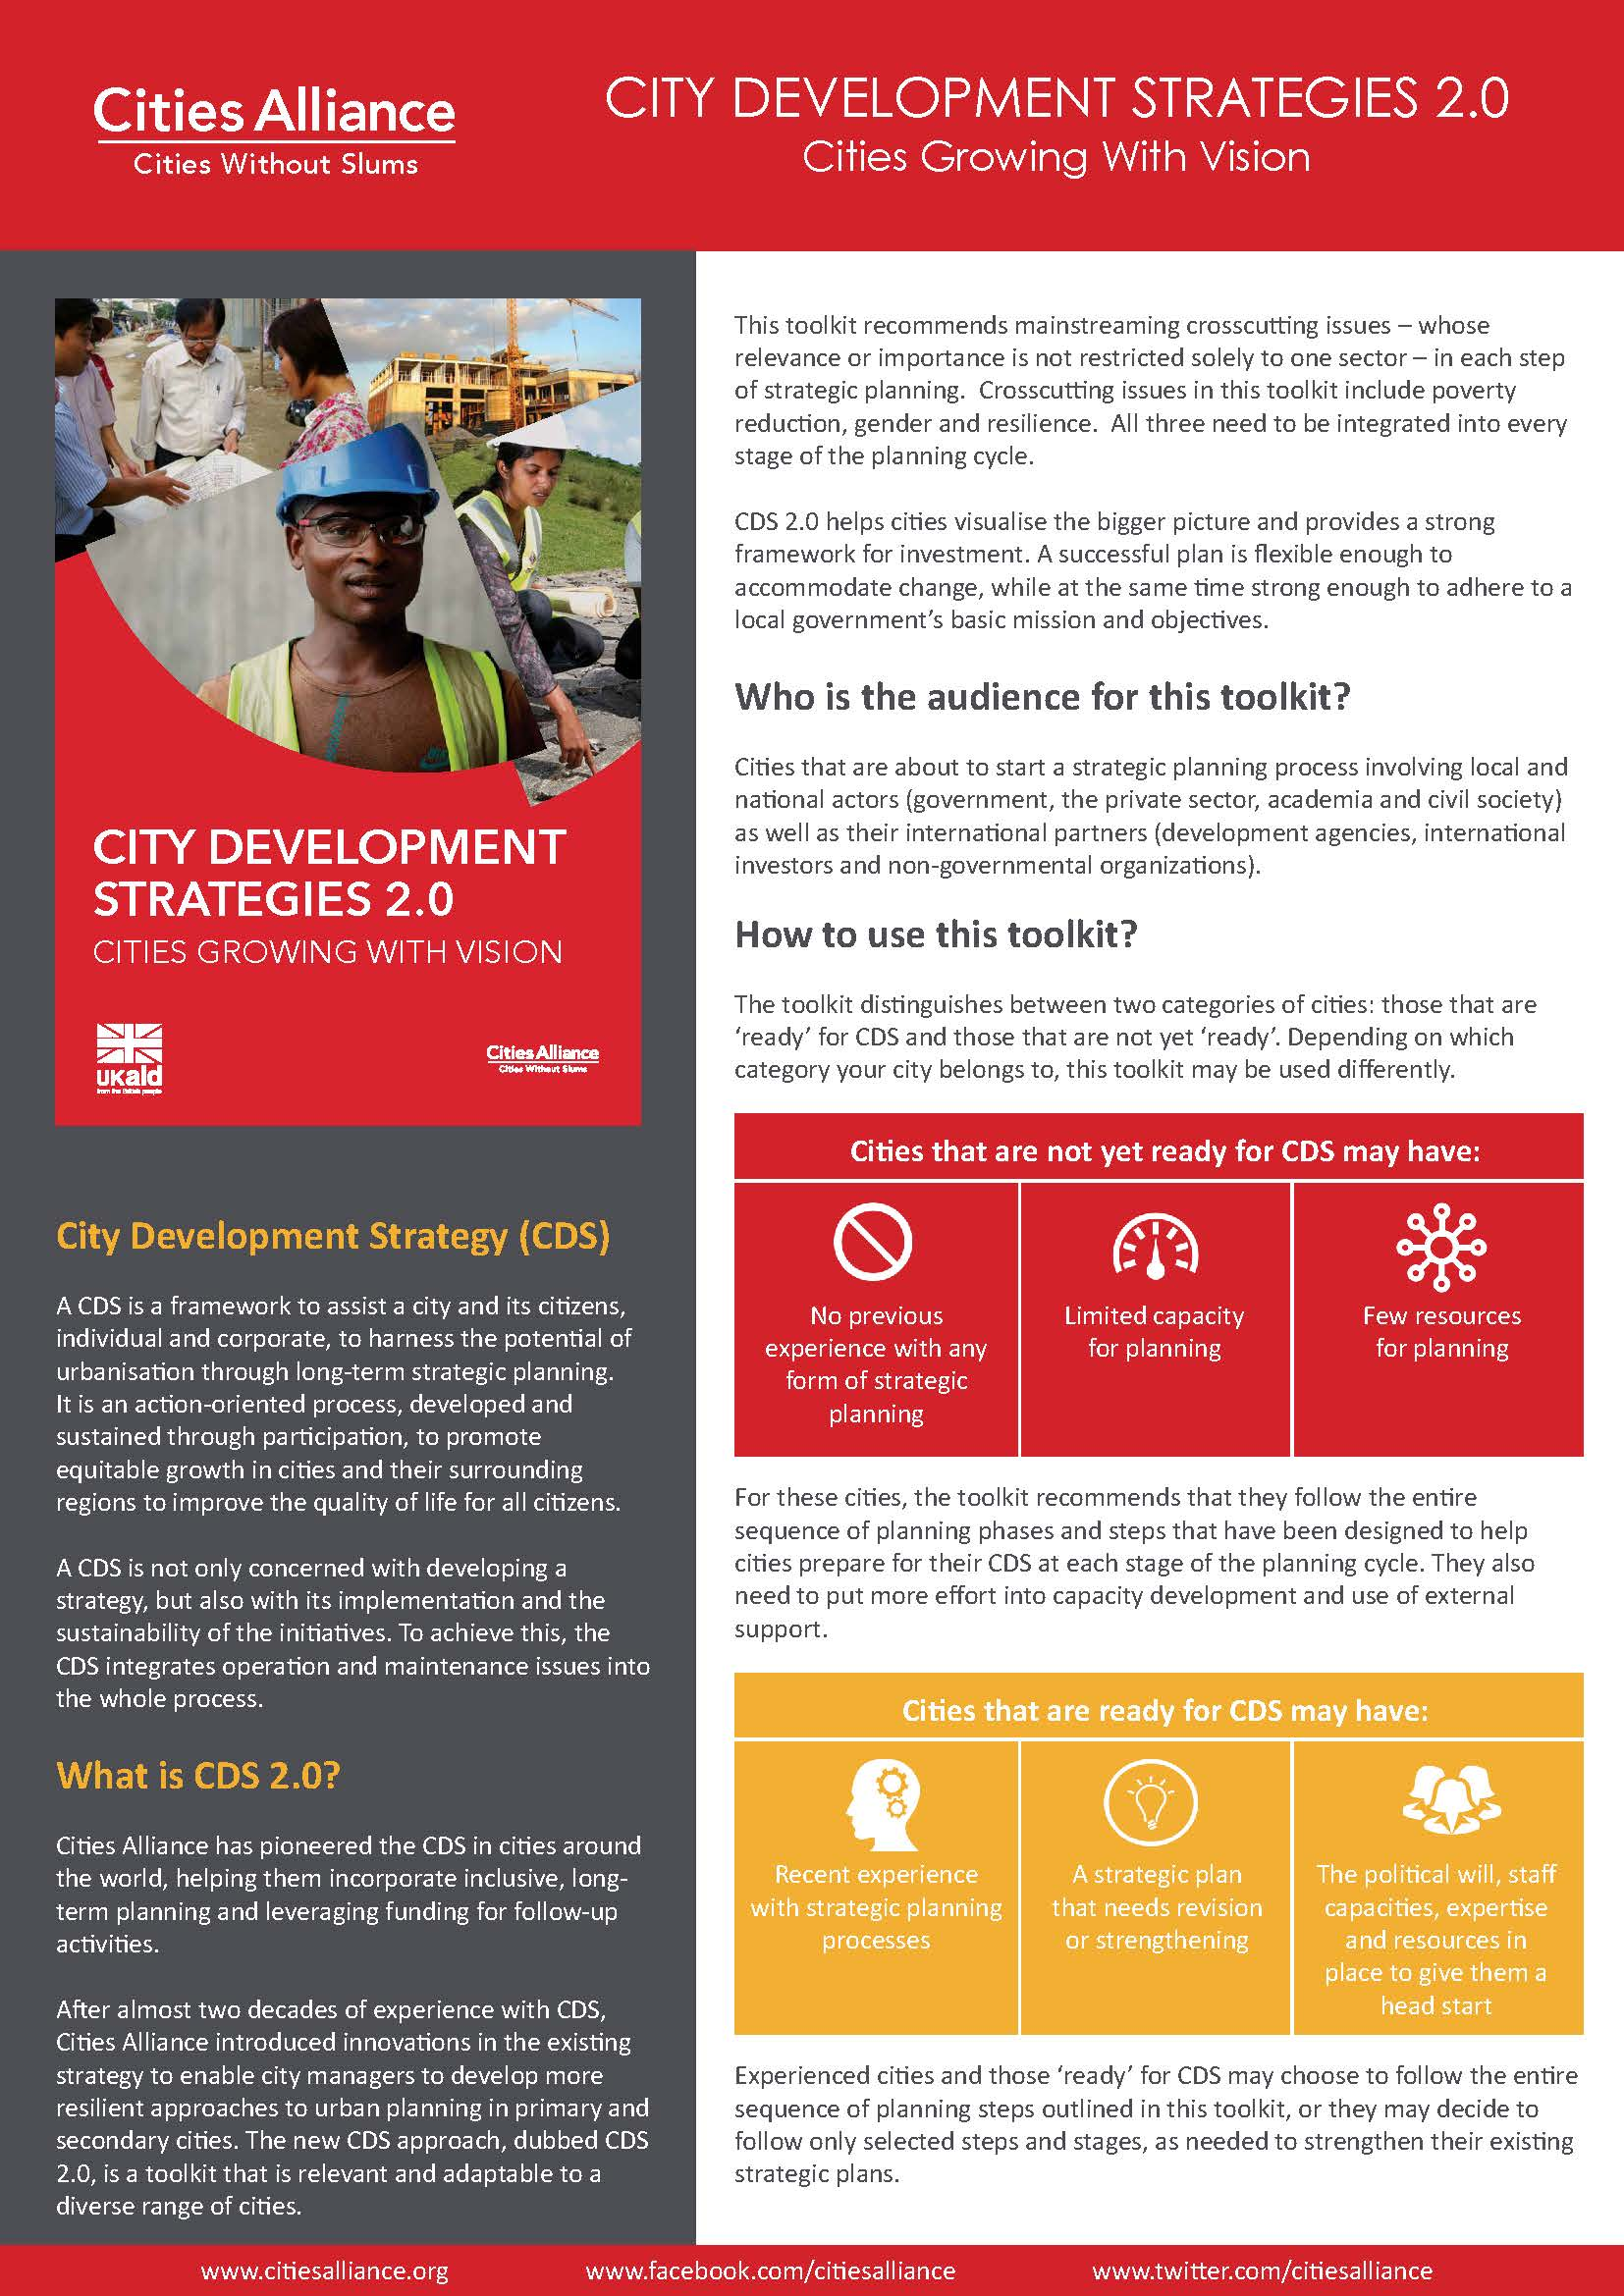 City Development Strategies 2.0 - Cities Growing With Vision